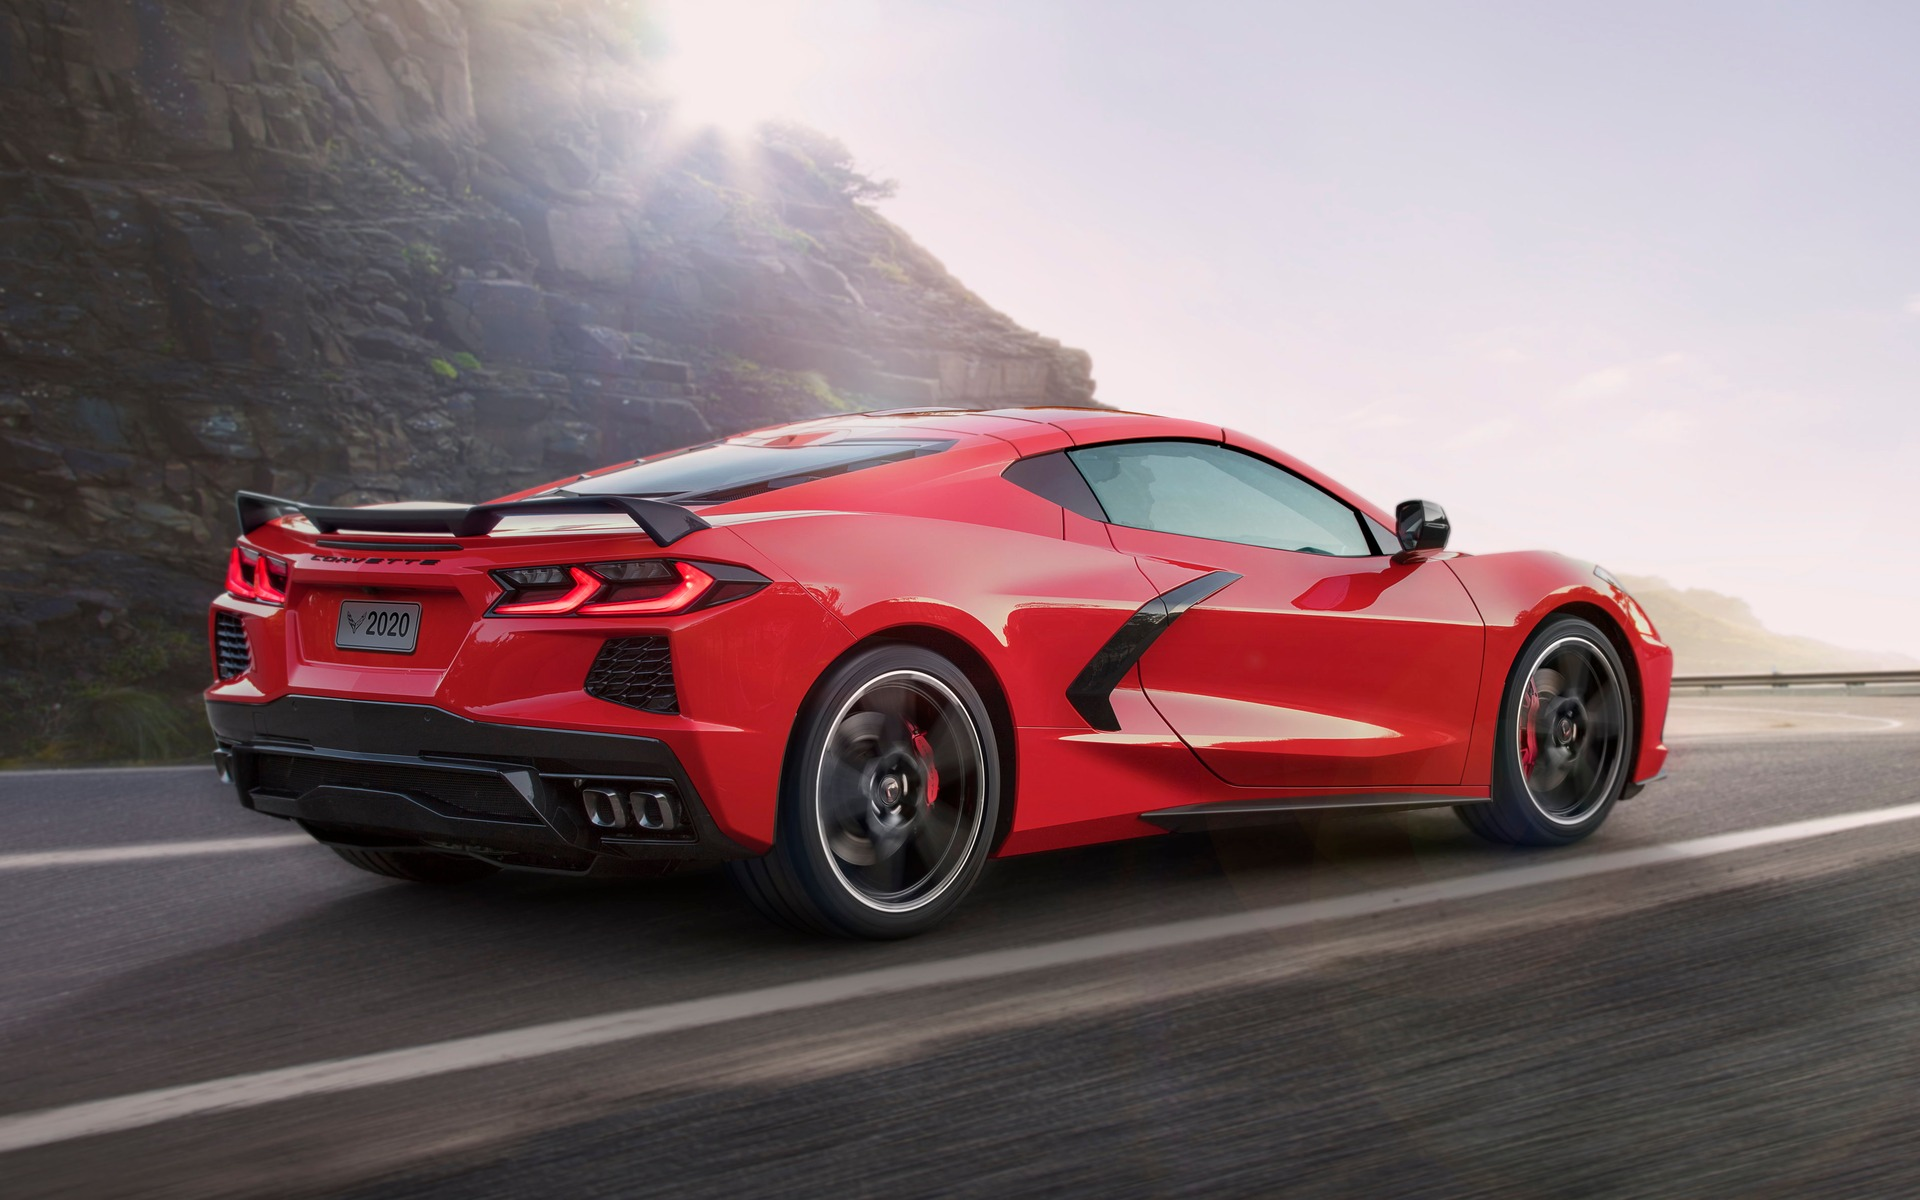 30 The 2020 Chevrolet Corvette Images Configurations for 2020 Chevrolet Corvette Images